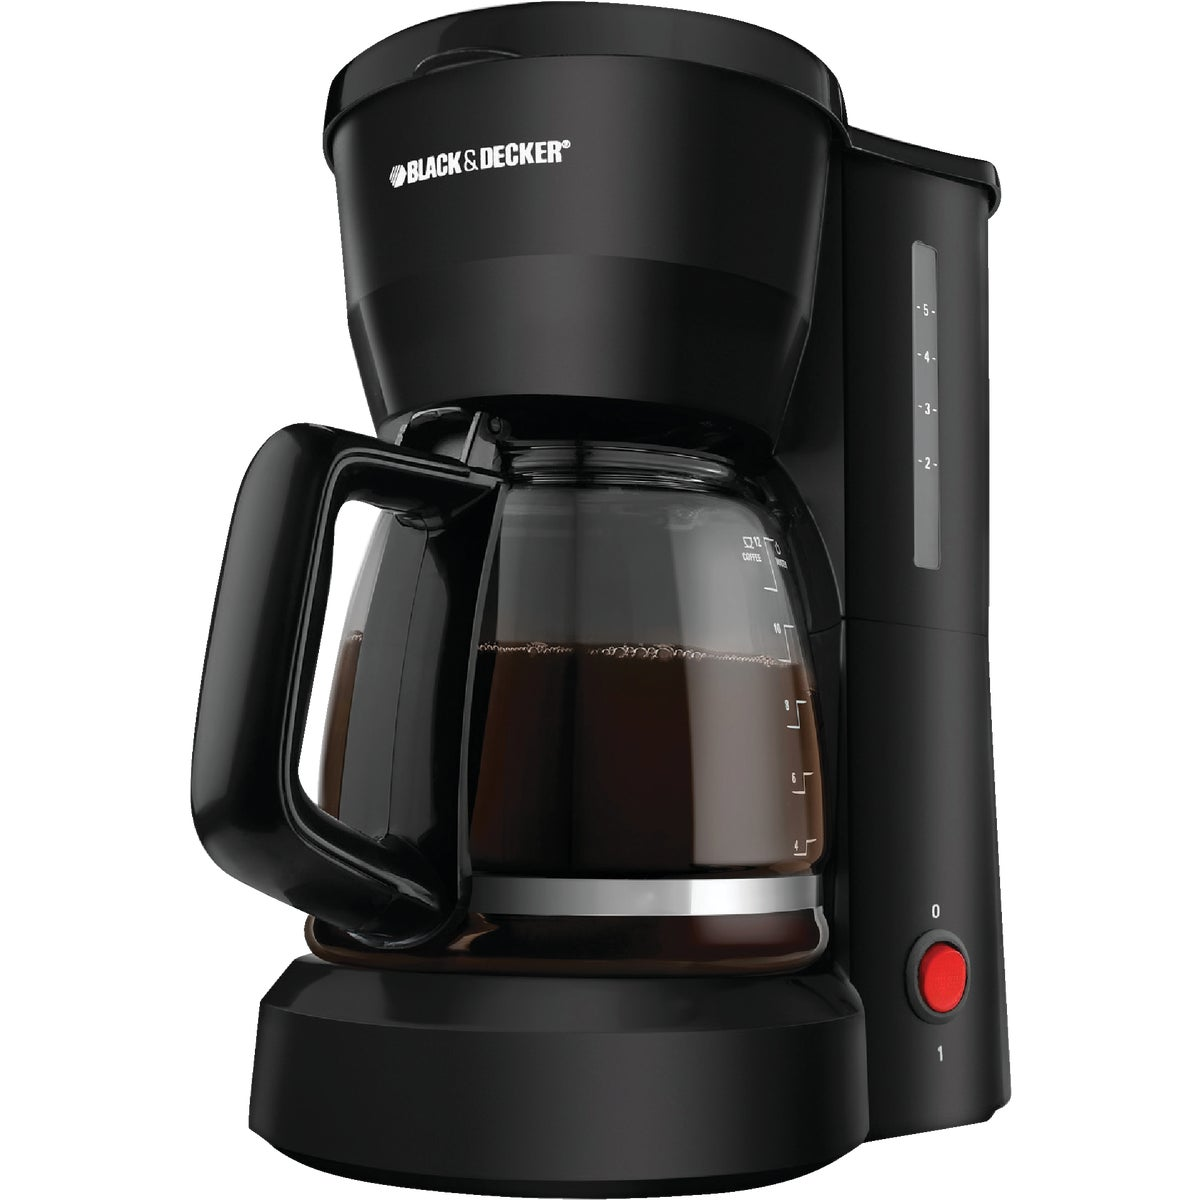 BLK 5-CUP COFFEE MAKER - DCM600B by Applia      Spectrum